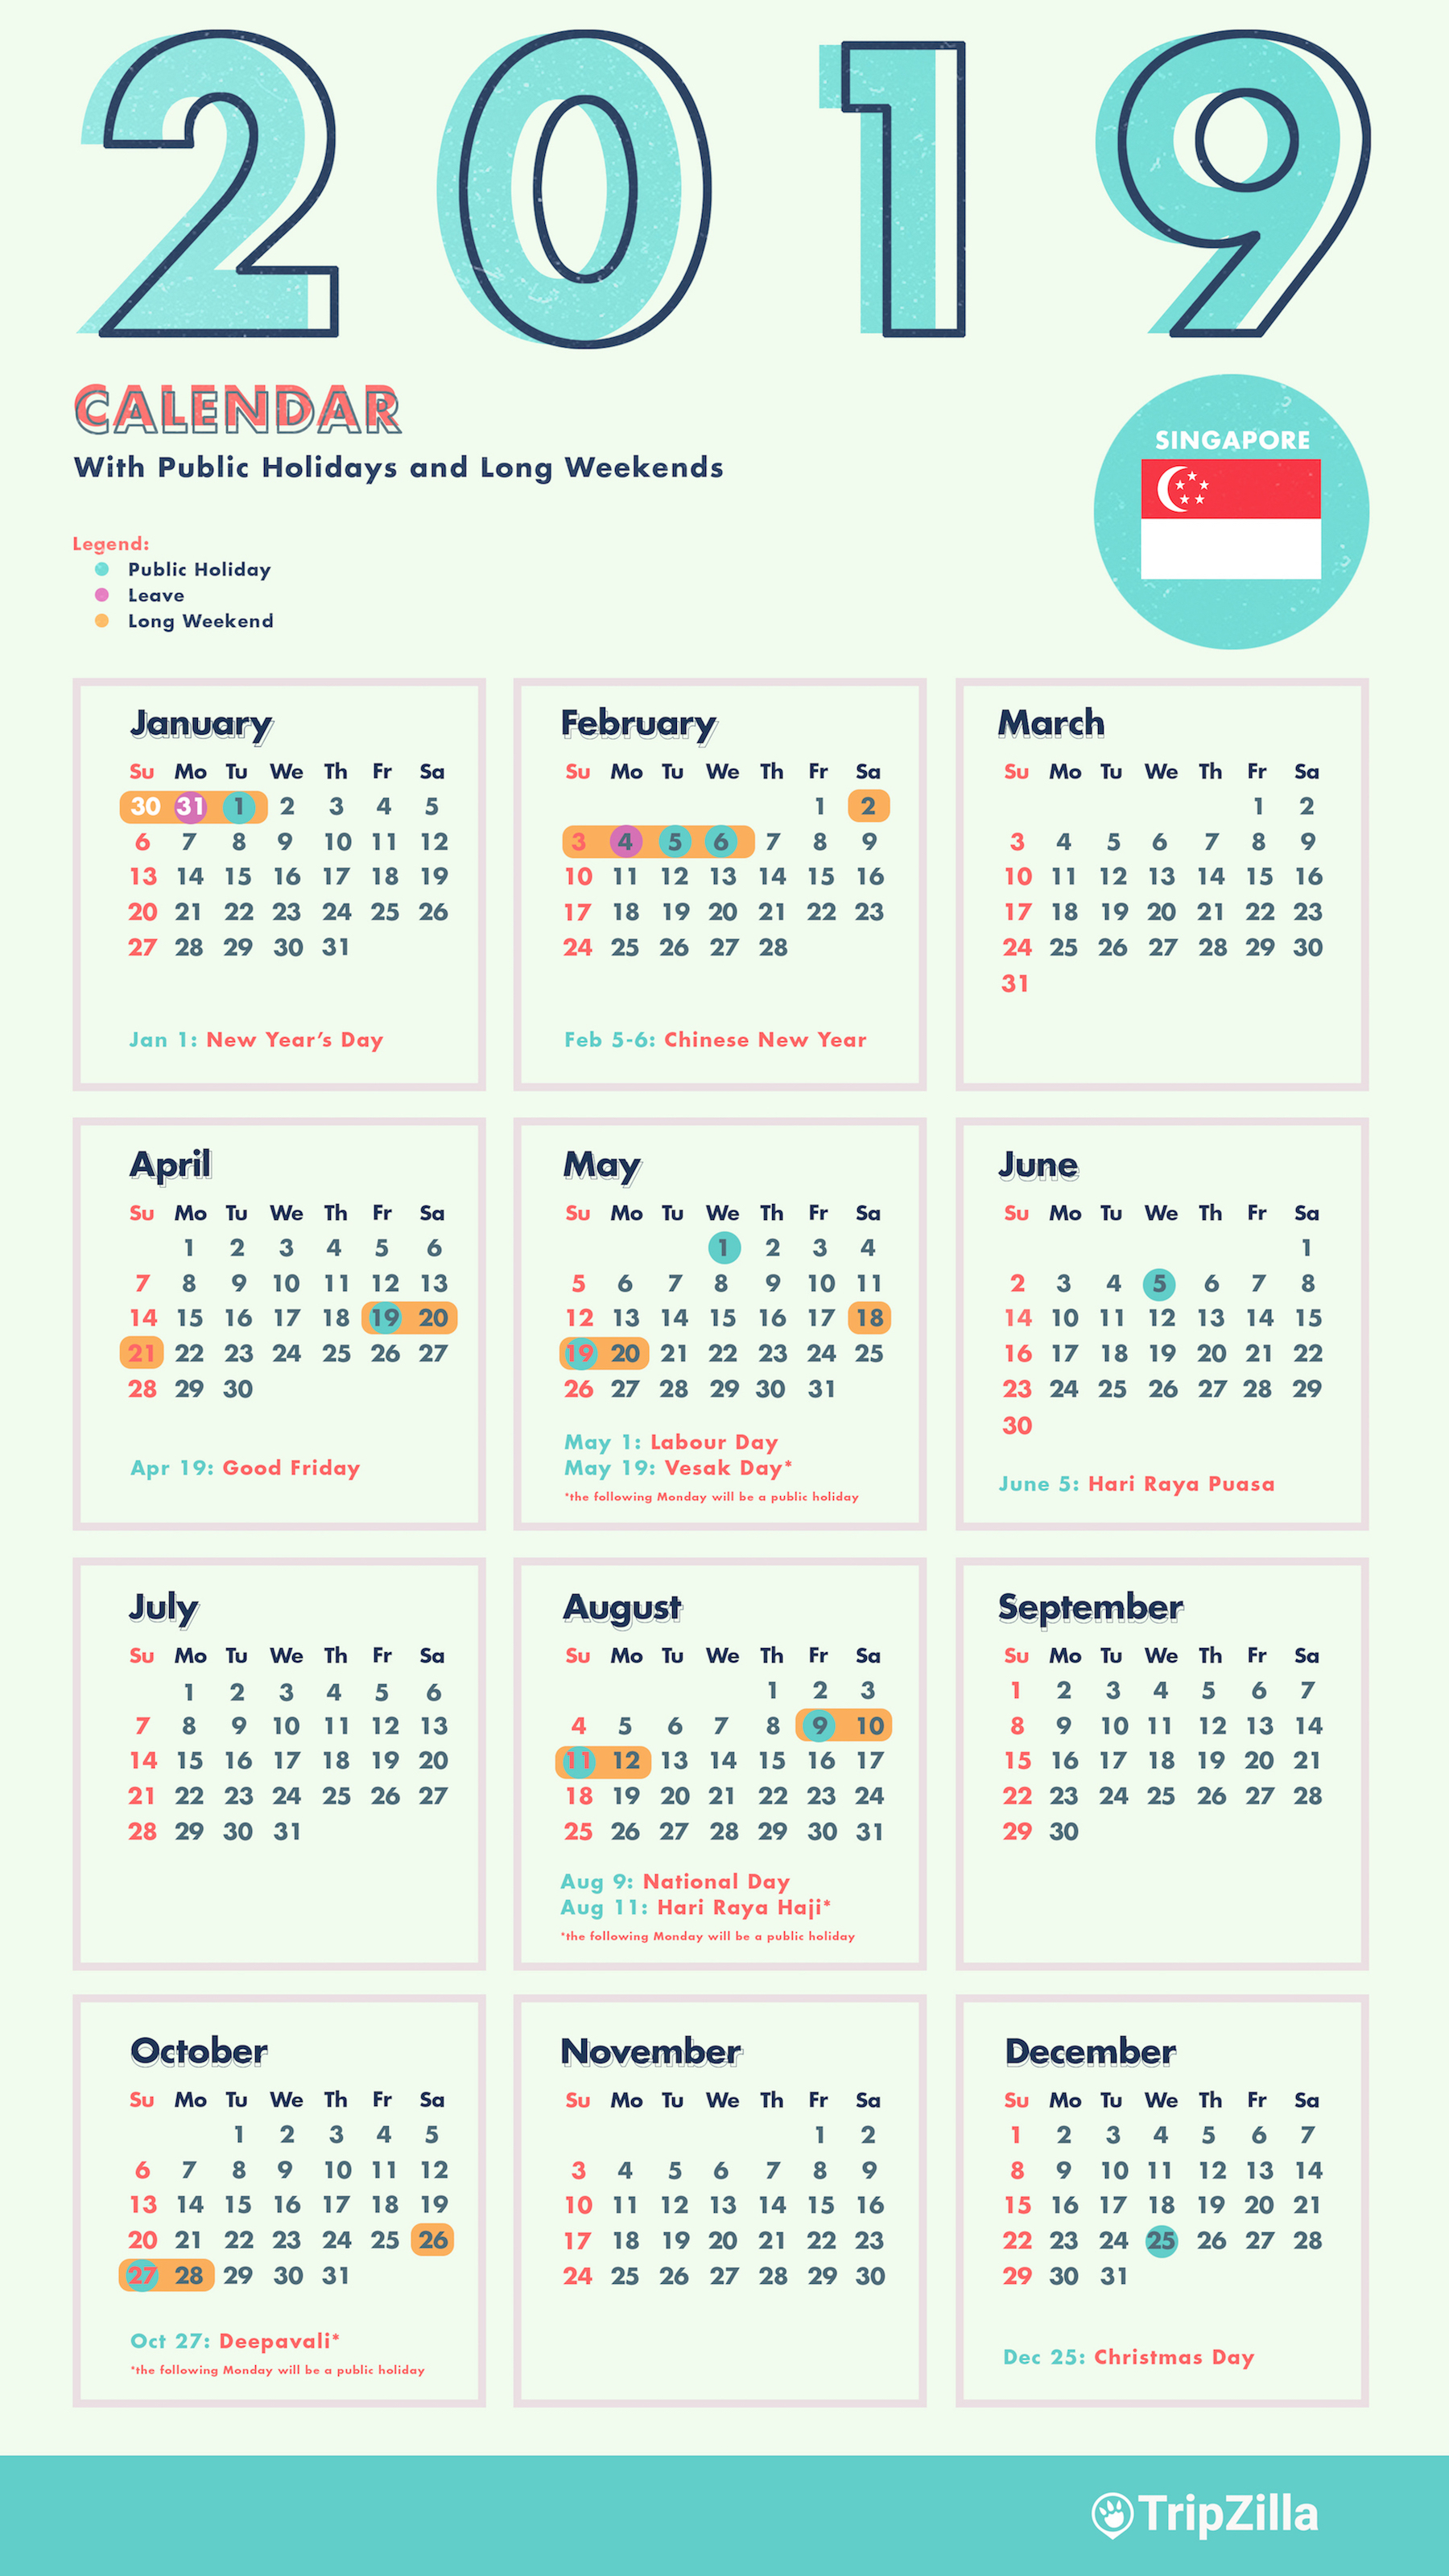 singapore 2019 public holidays and long weekends calendar